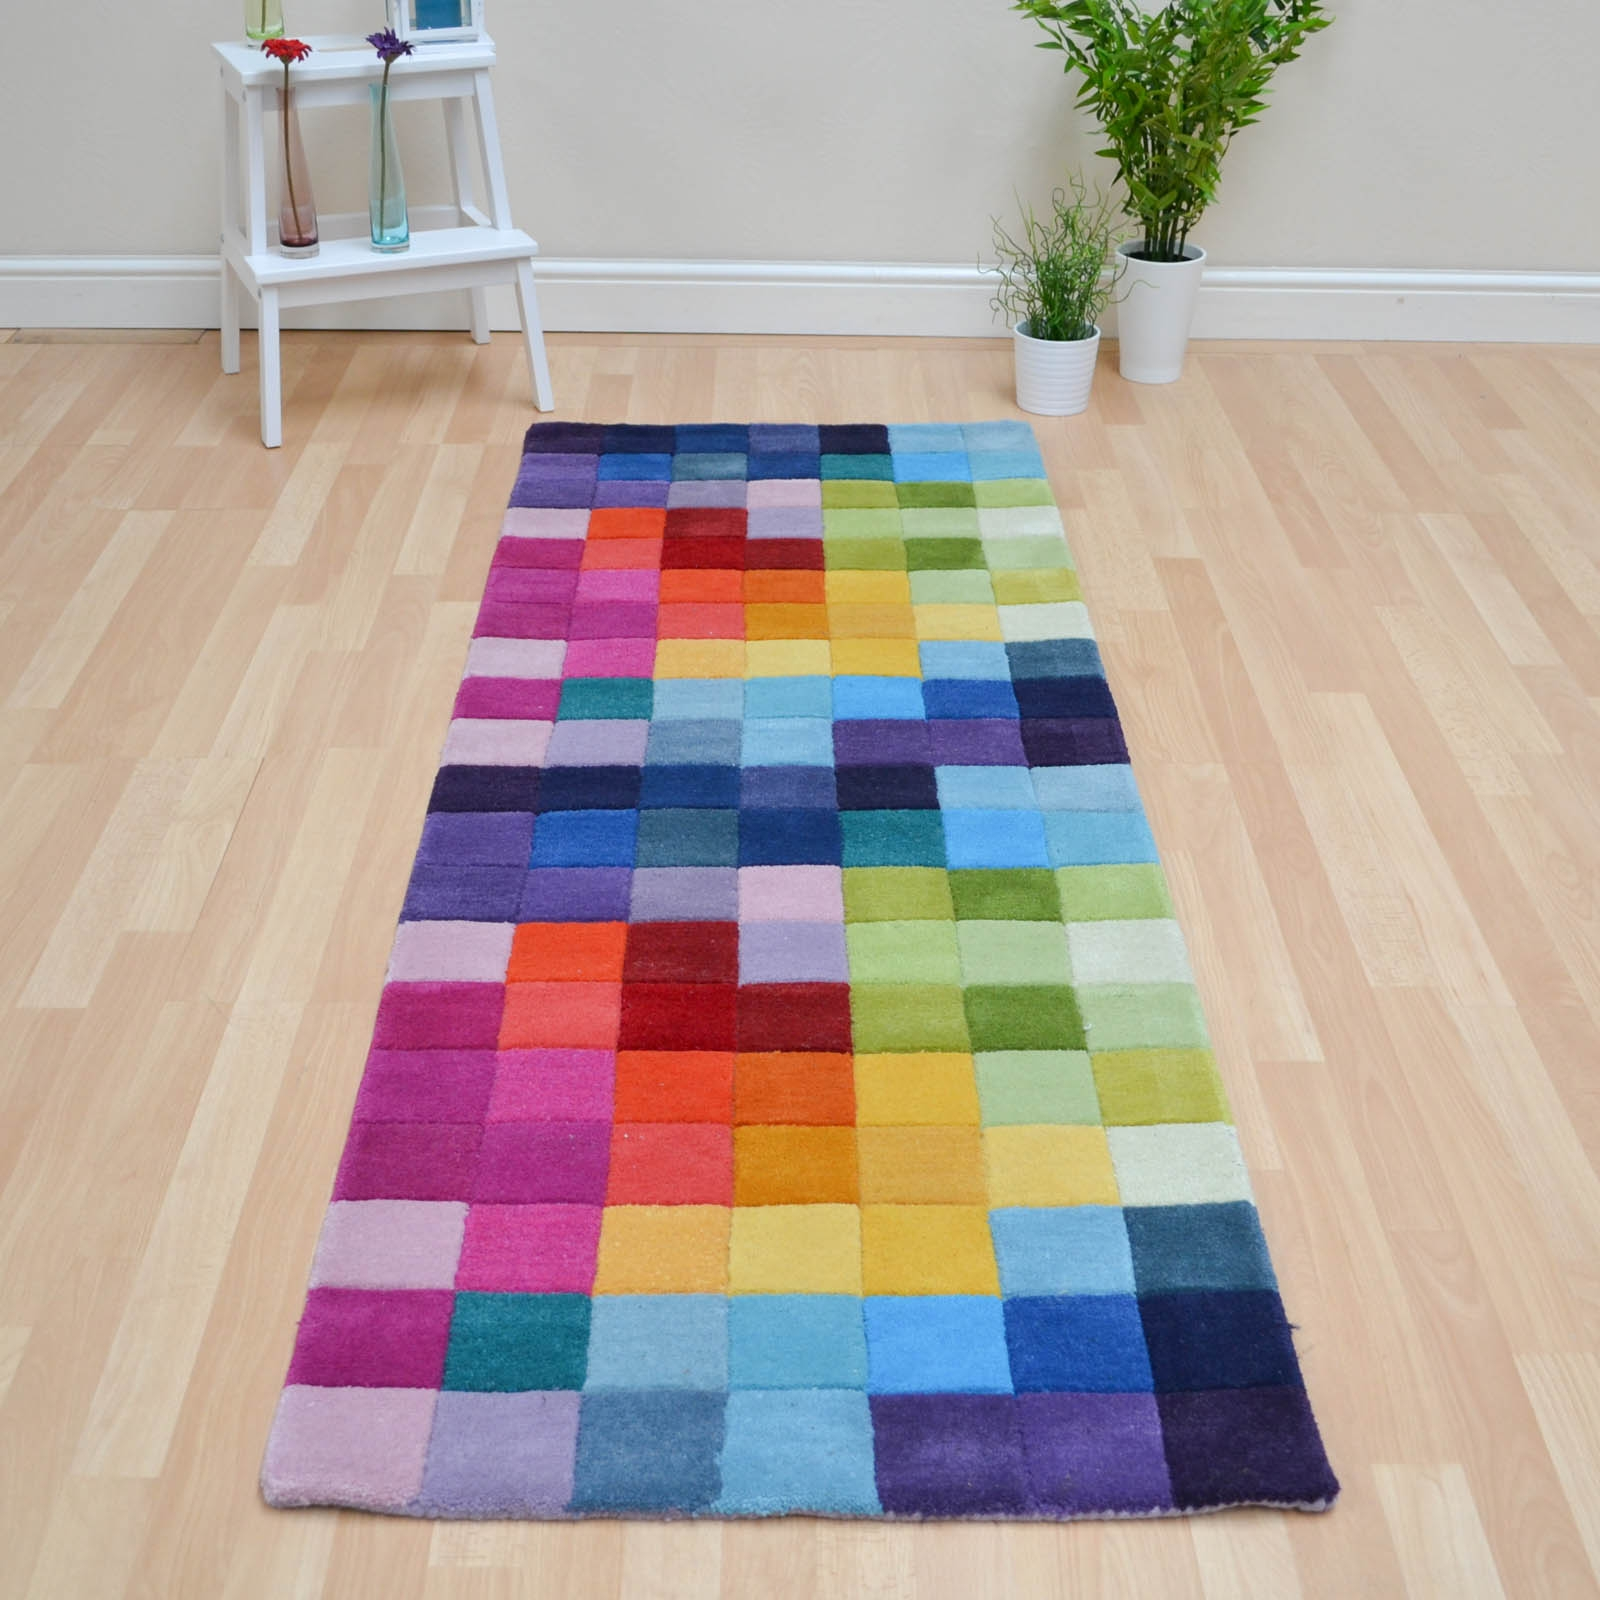 Hall Runner Rugs Uk Roselawnlutheran Throughout Hall Runner (View 12 of 15)